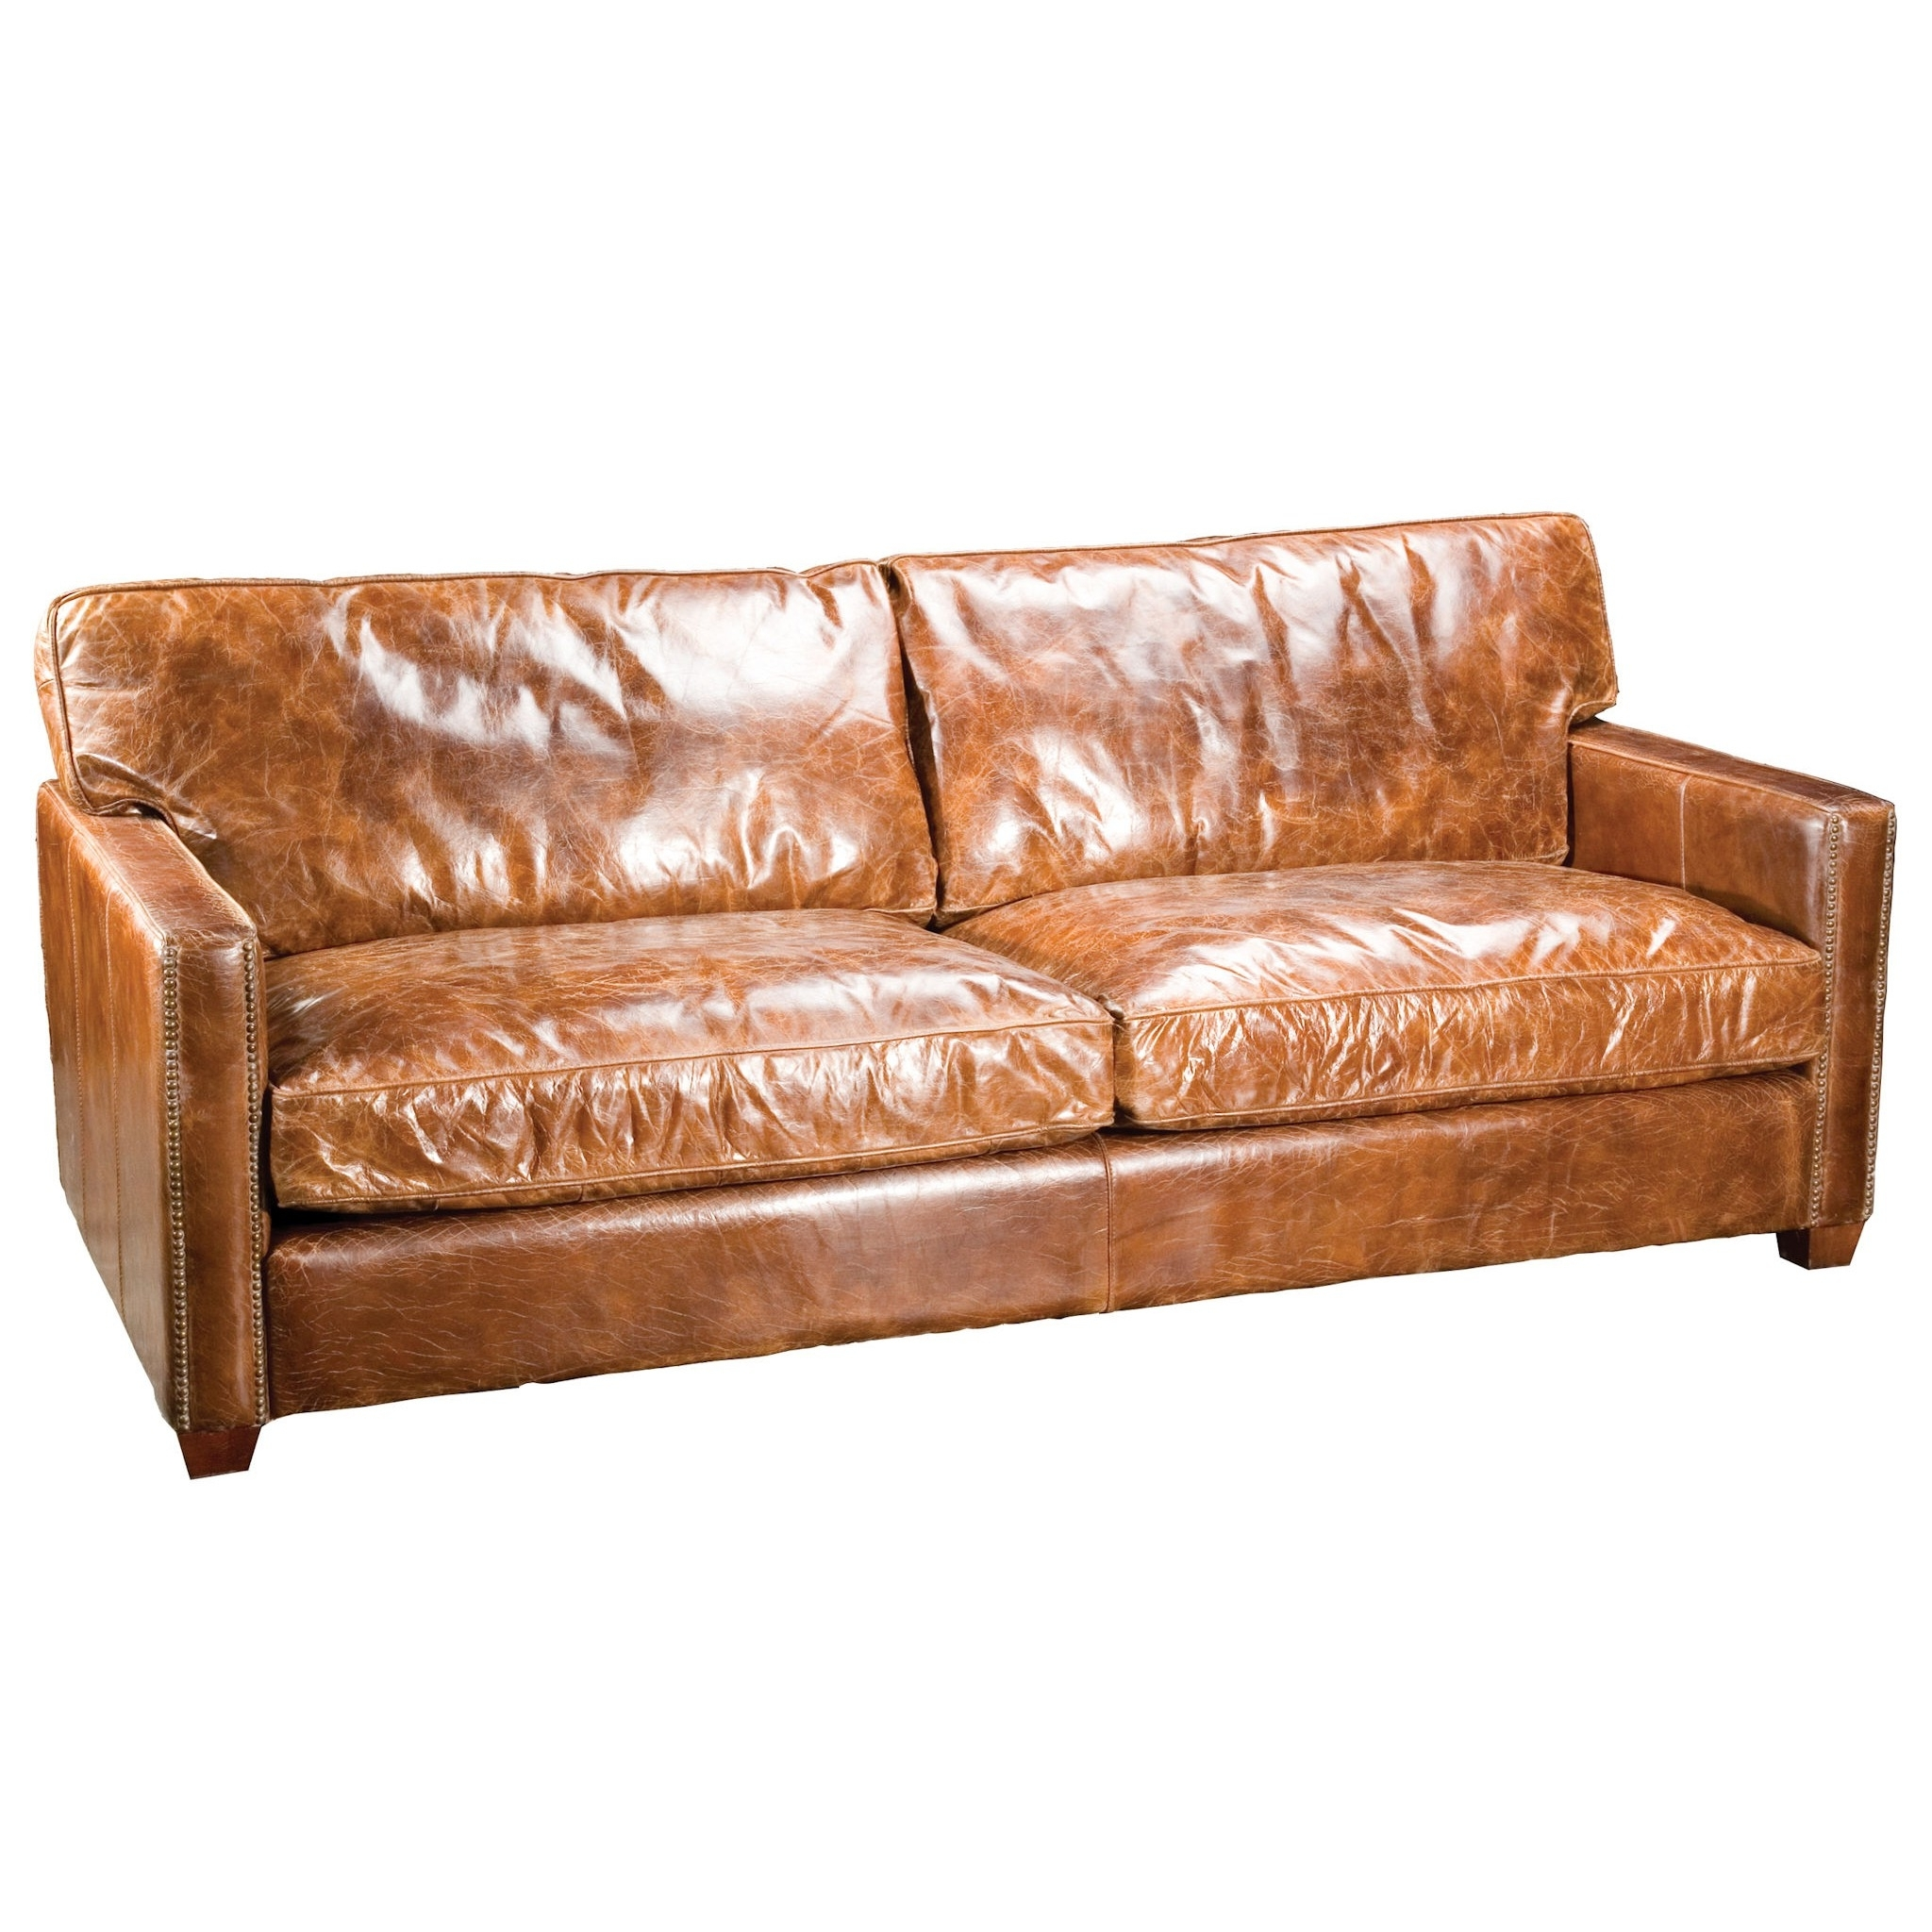 Fashionable Espresso Leather Top Grain Amusing Full Grain Leather Sofa – Home With Full Grain Leather Sofas (View 6 of 20)